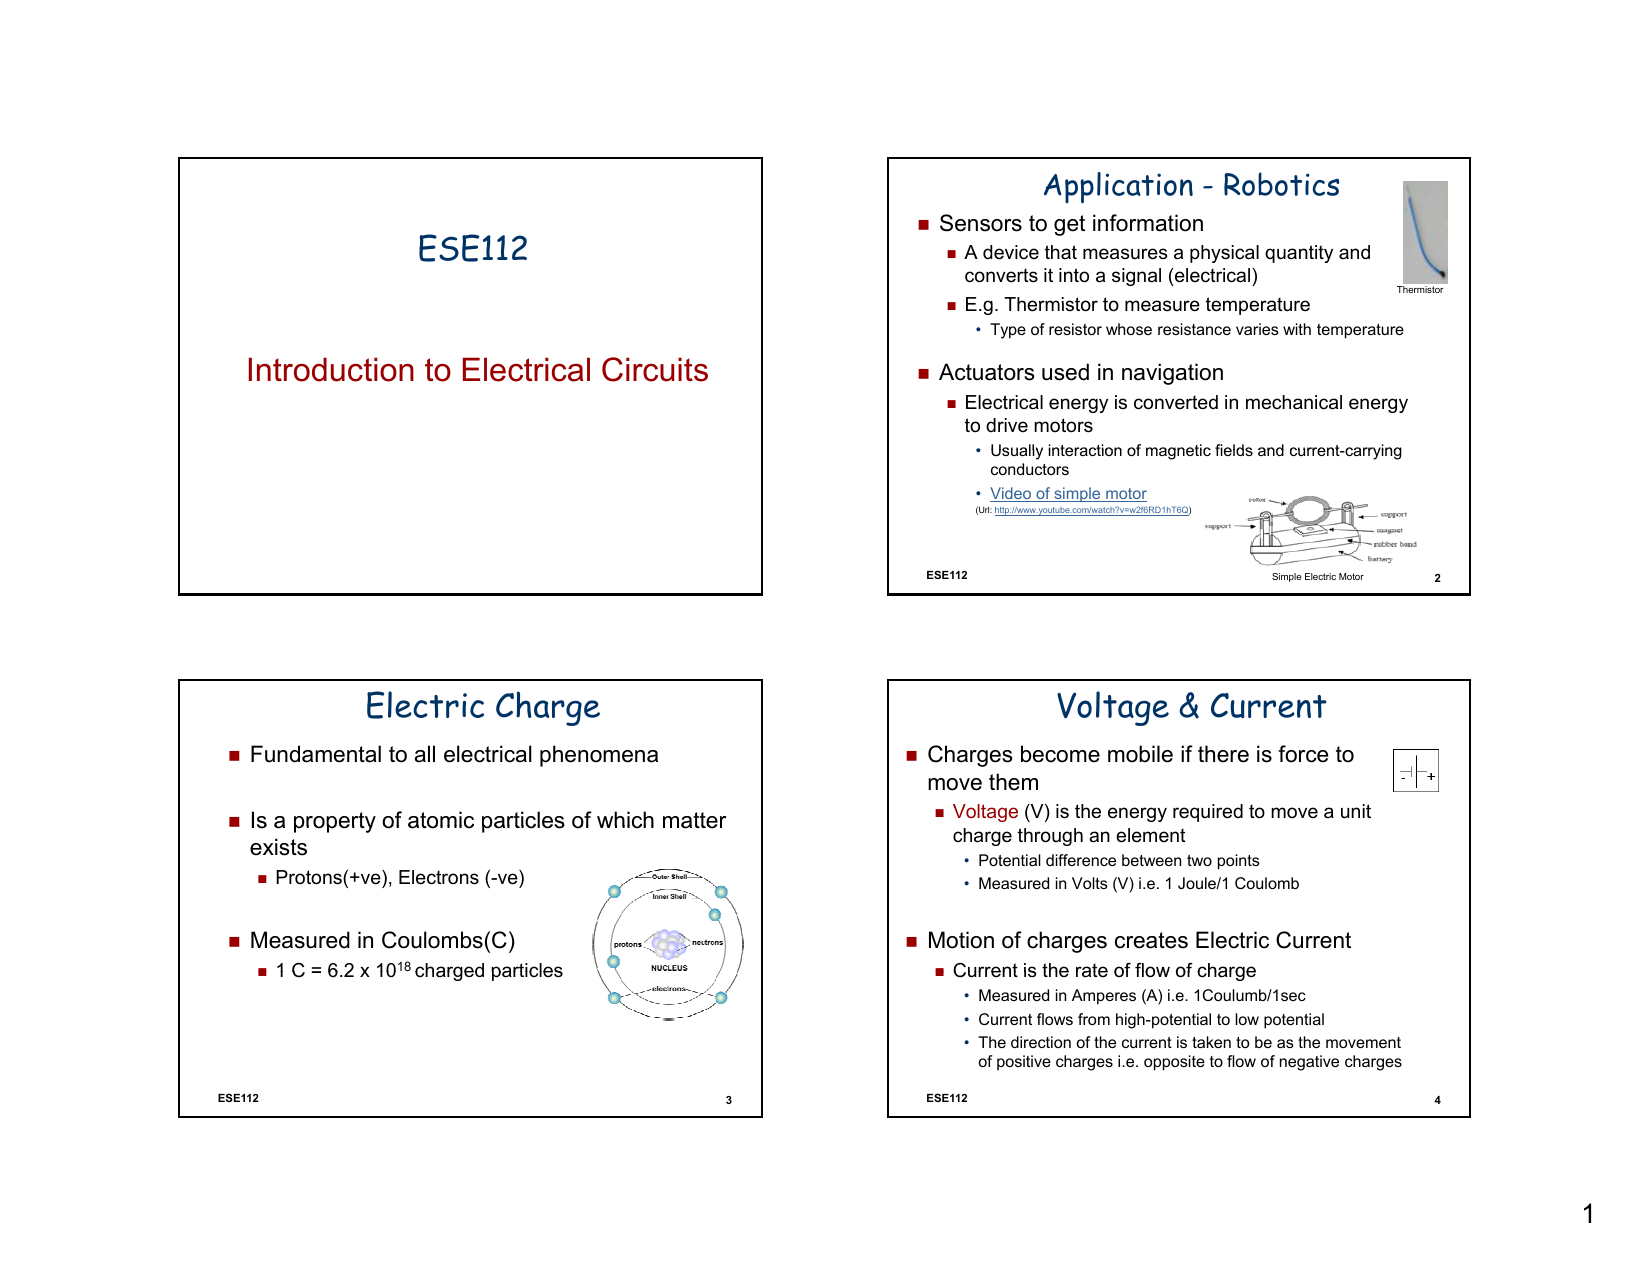 Ese112 Introduction To Electrical Circuits Electric Charge Voltage Commonly Found In Various Type Of Resistors Are A